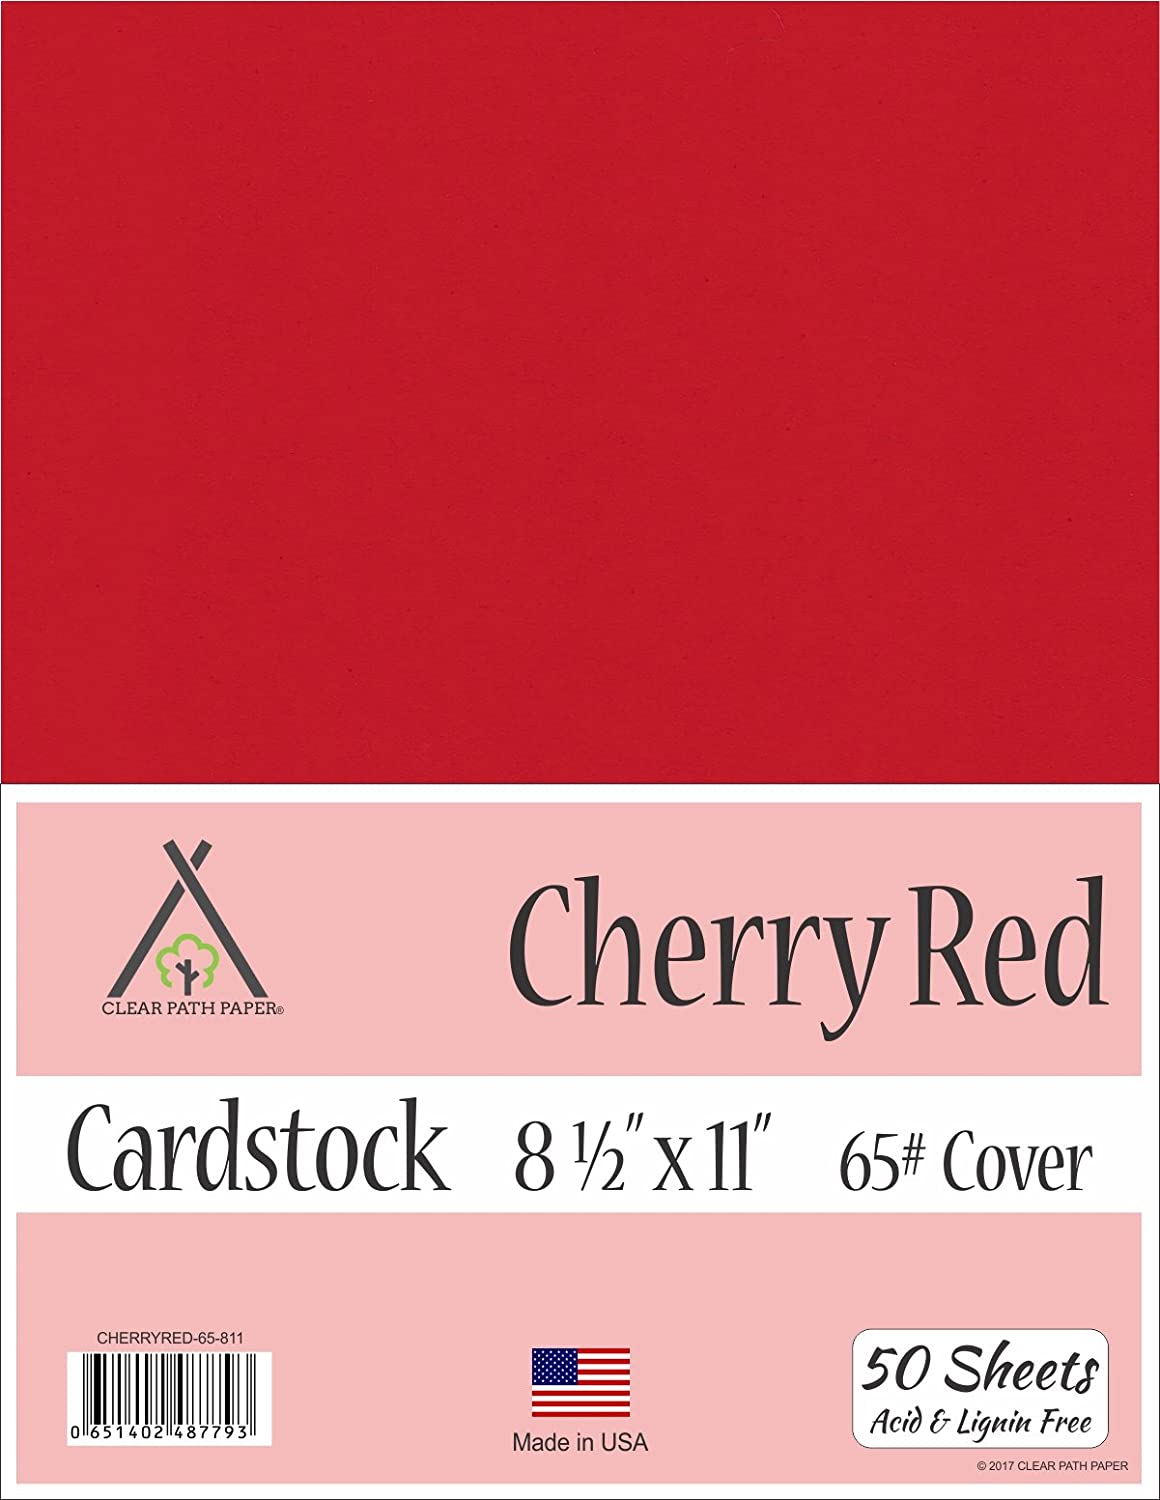 Cherry Red Cardstock - 8.5 x 11 inch - 65Lb Cover - 50 Sheets Clear Path Paper 4336867736